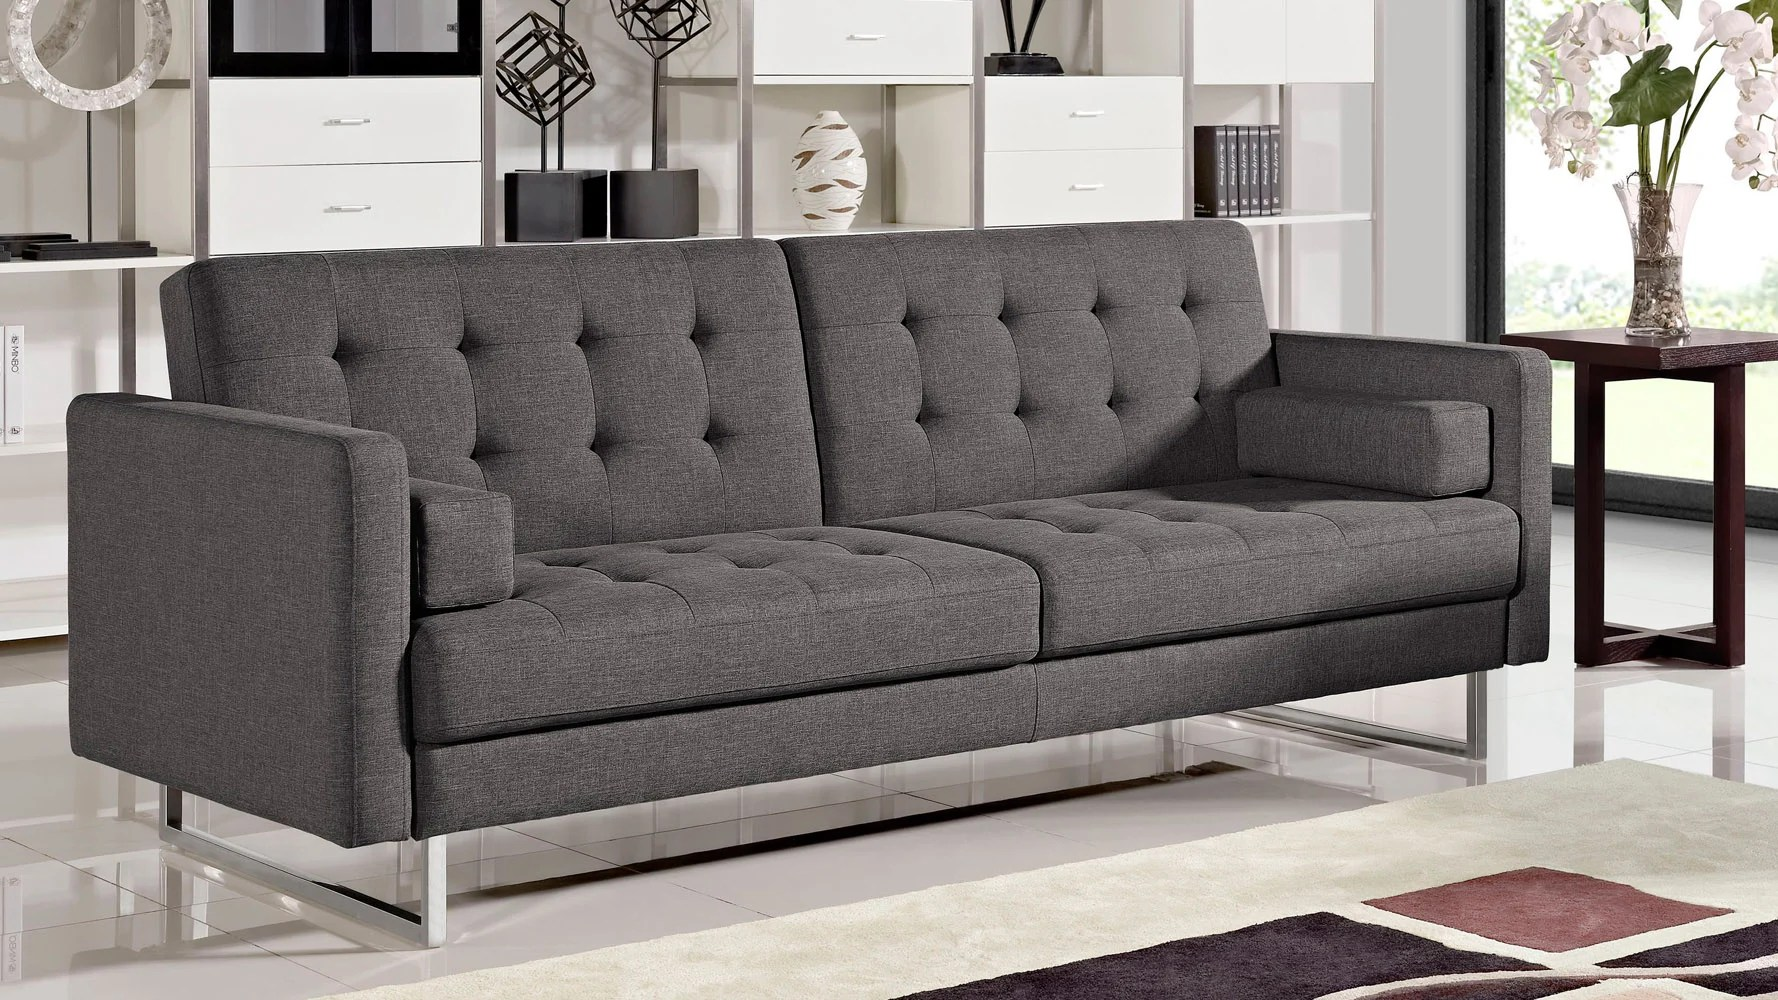 sofas with legs spain sofa bed beta fabric polished steel charcoal